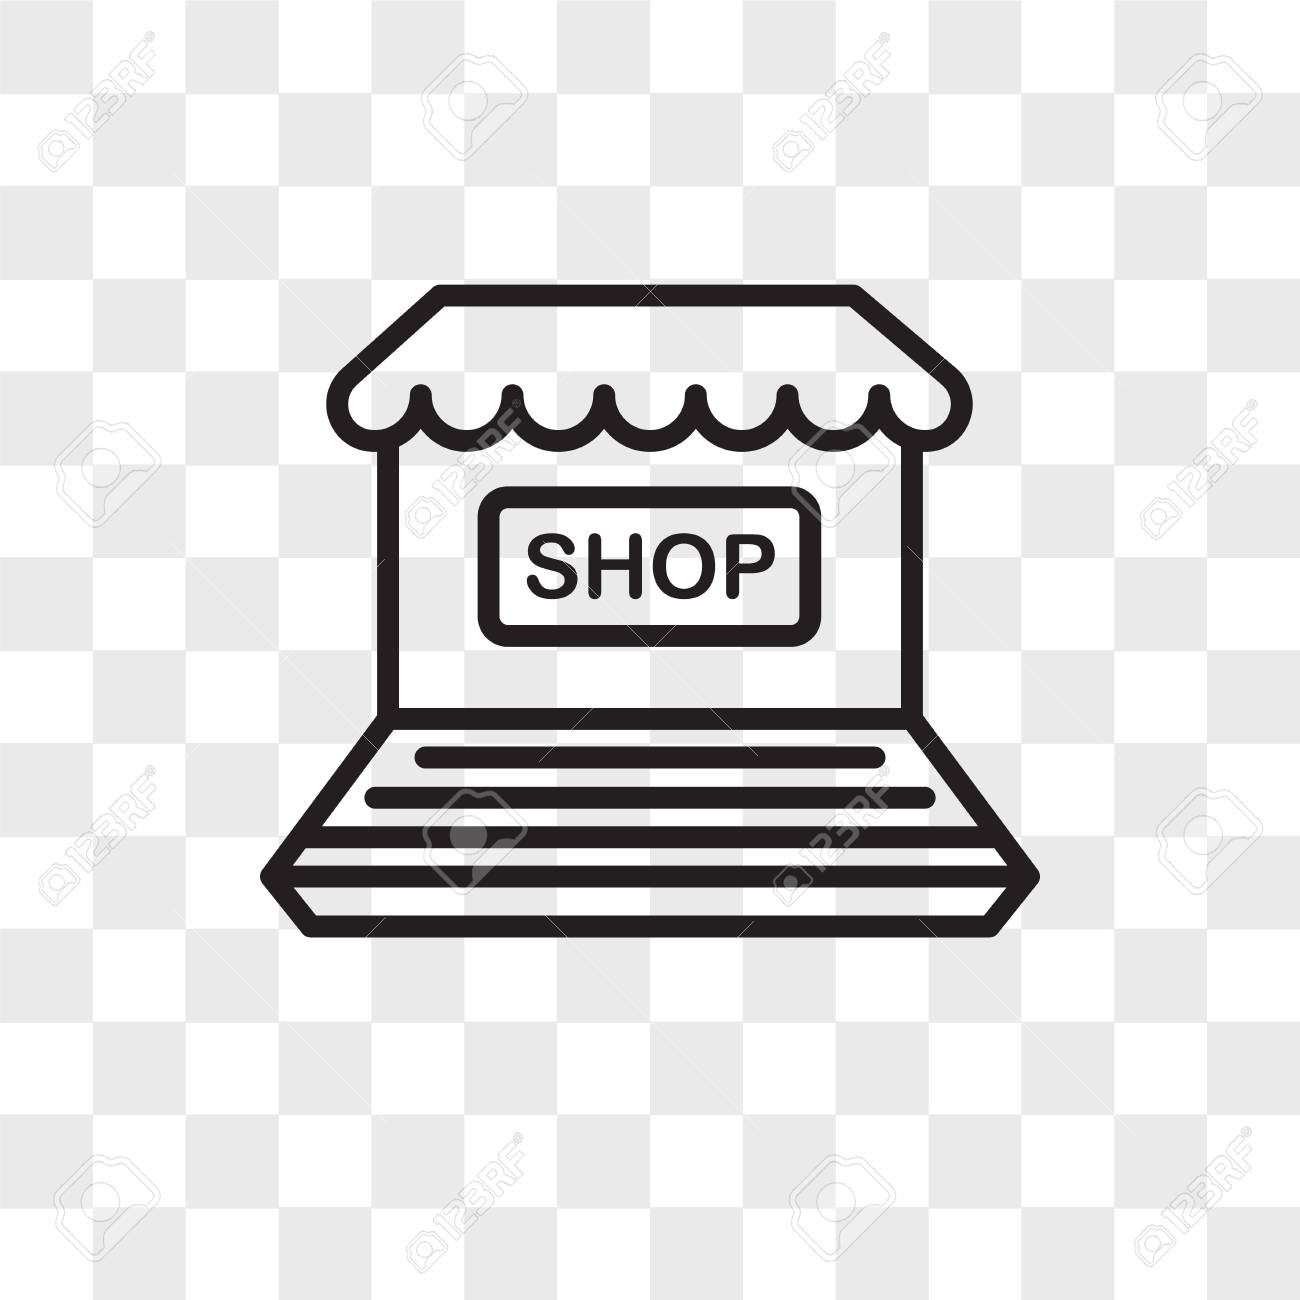 Free Download Online Shop Vector Icon Isolated On Transparent Background Online 1300x1300 For Your Desktop Mobile Tablet Explore 33 Free Backgrounds Online Wallpapers Online Free Wallpaper Free Online Online Wallpapers Free